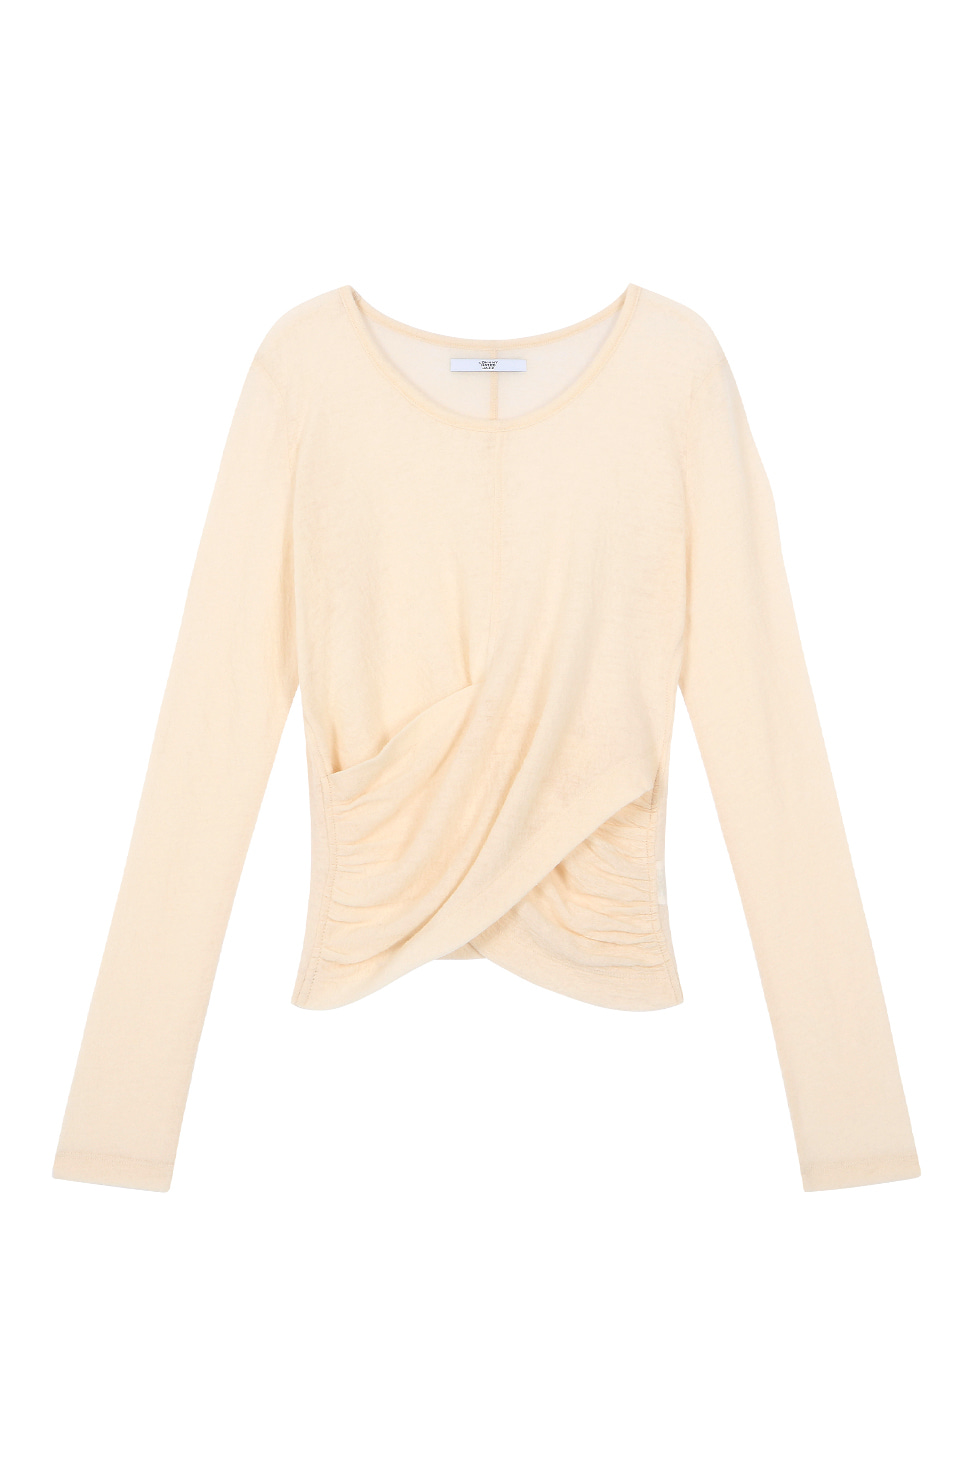 WOOL JERSEY LONG SLEEVES - IVORY